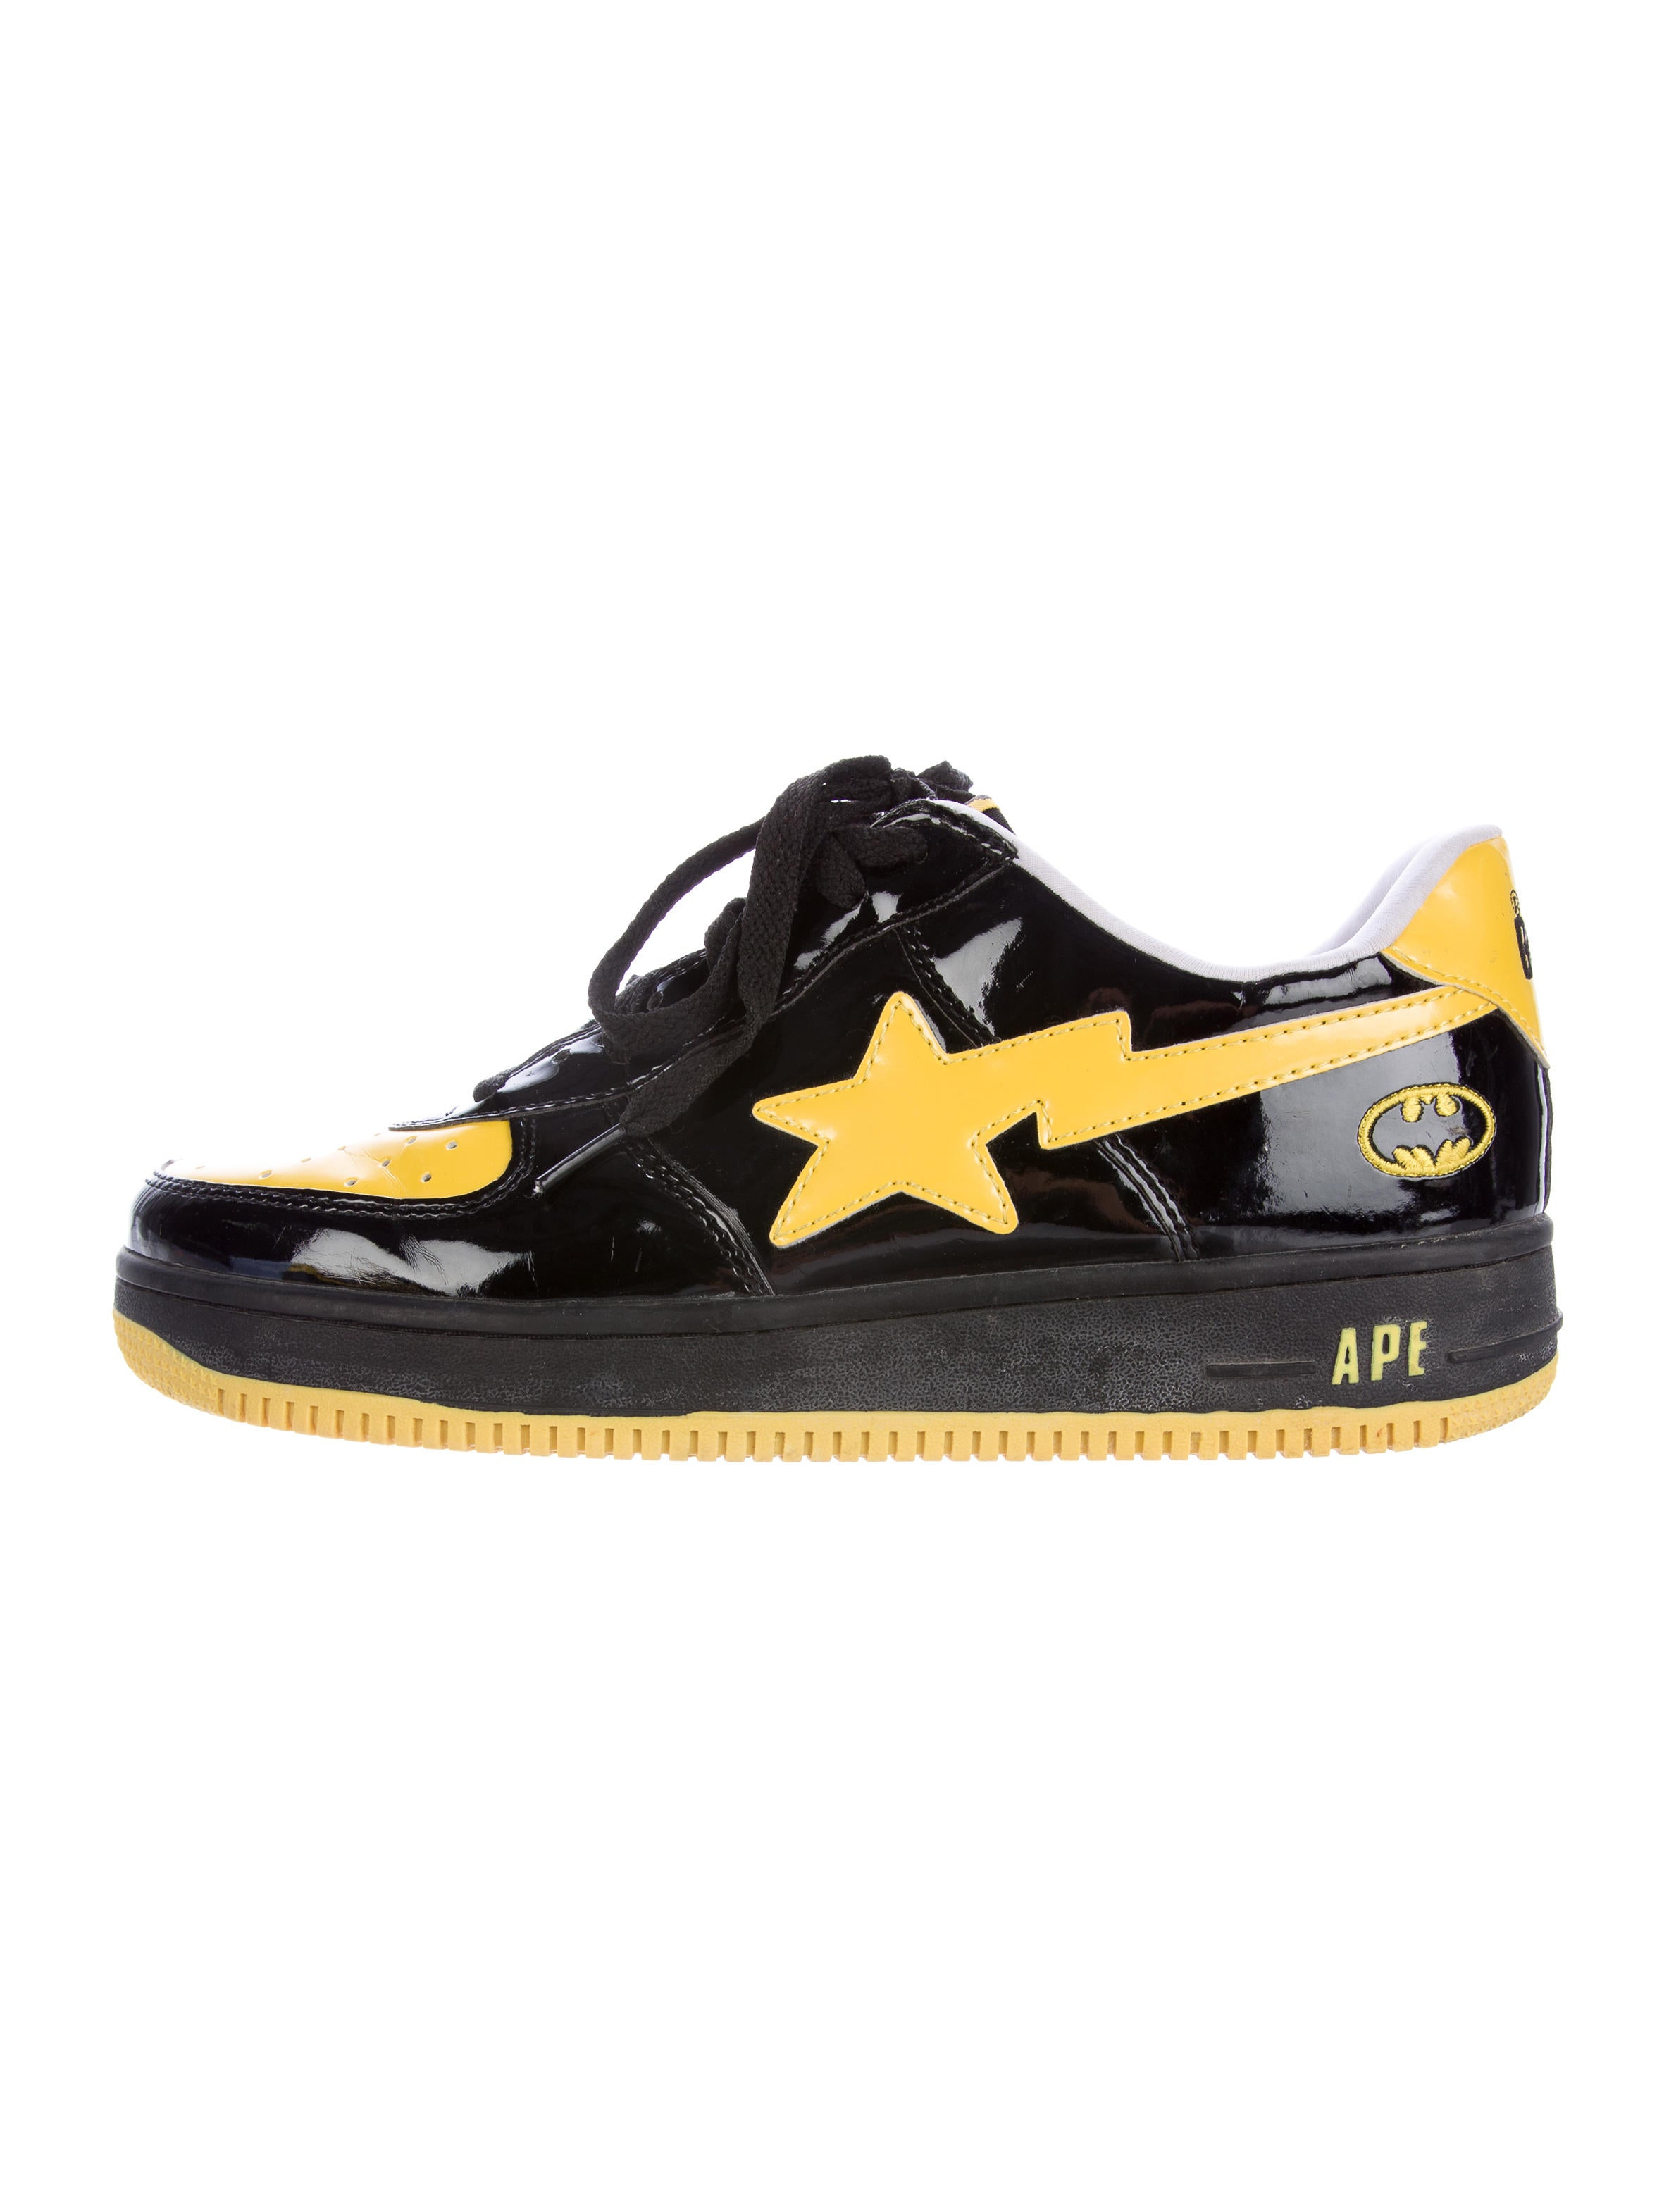 87e417f325e2 A Bathing Ape Bape Sta Batman Sneakers - Shoes - WBATP20082